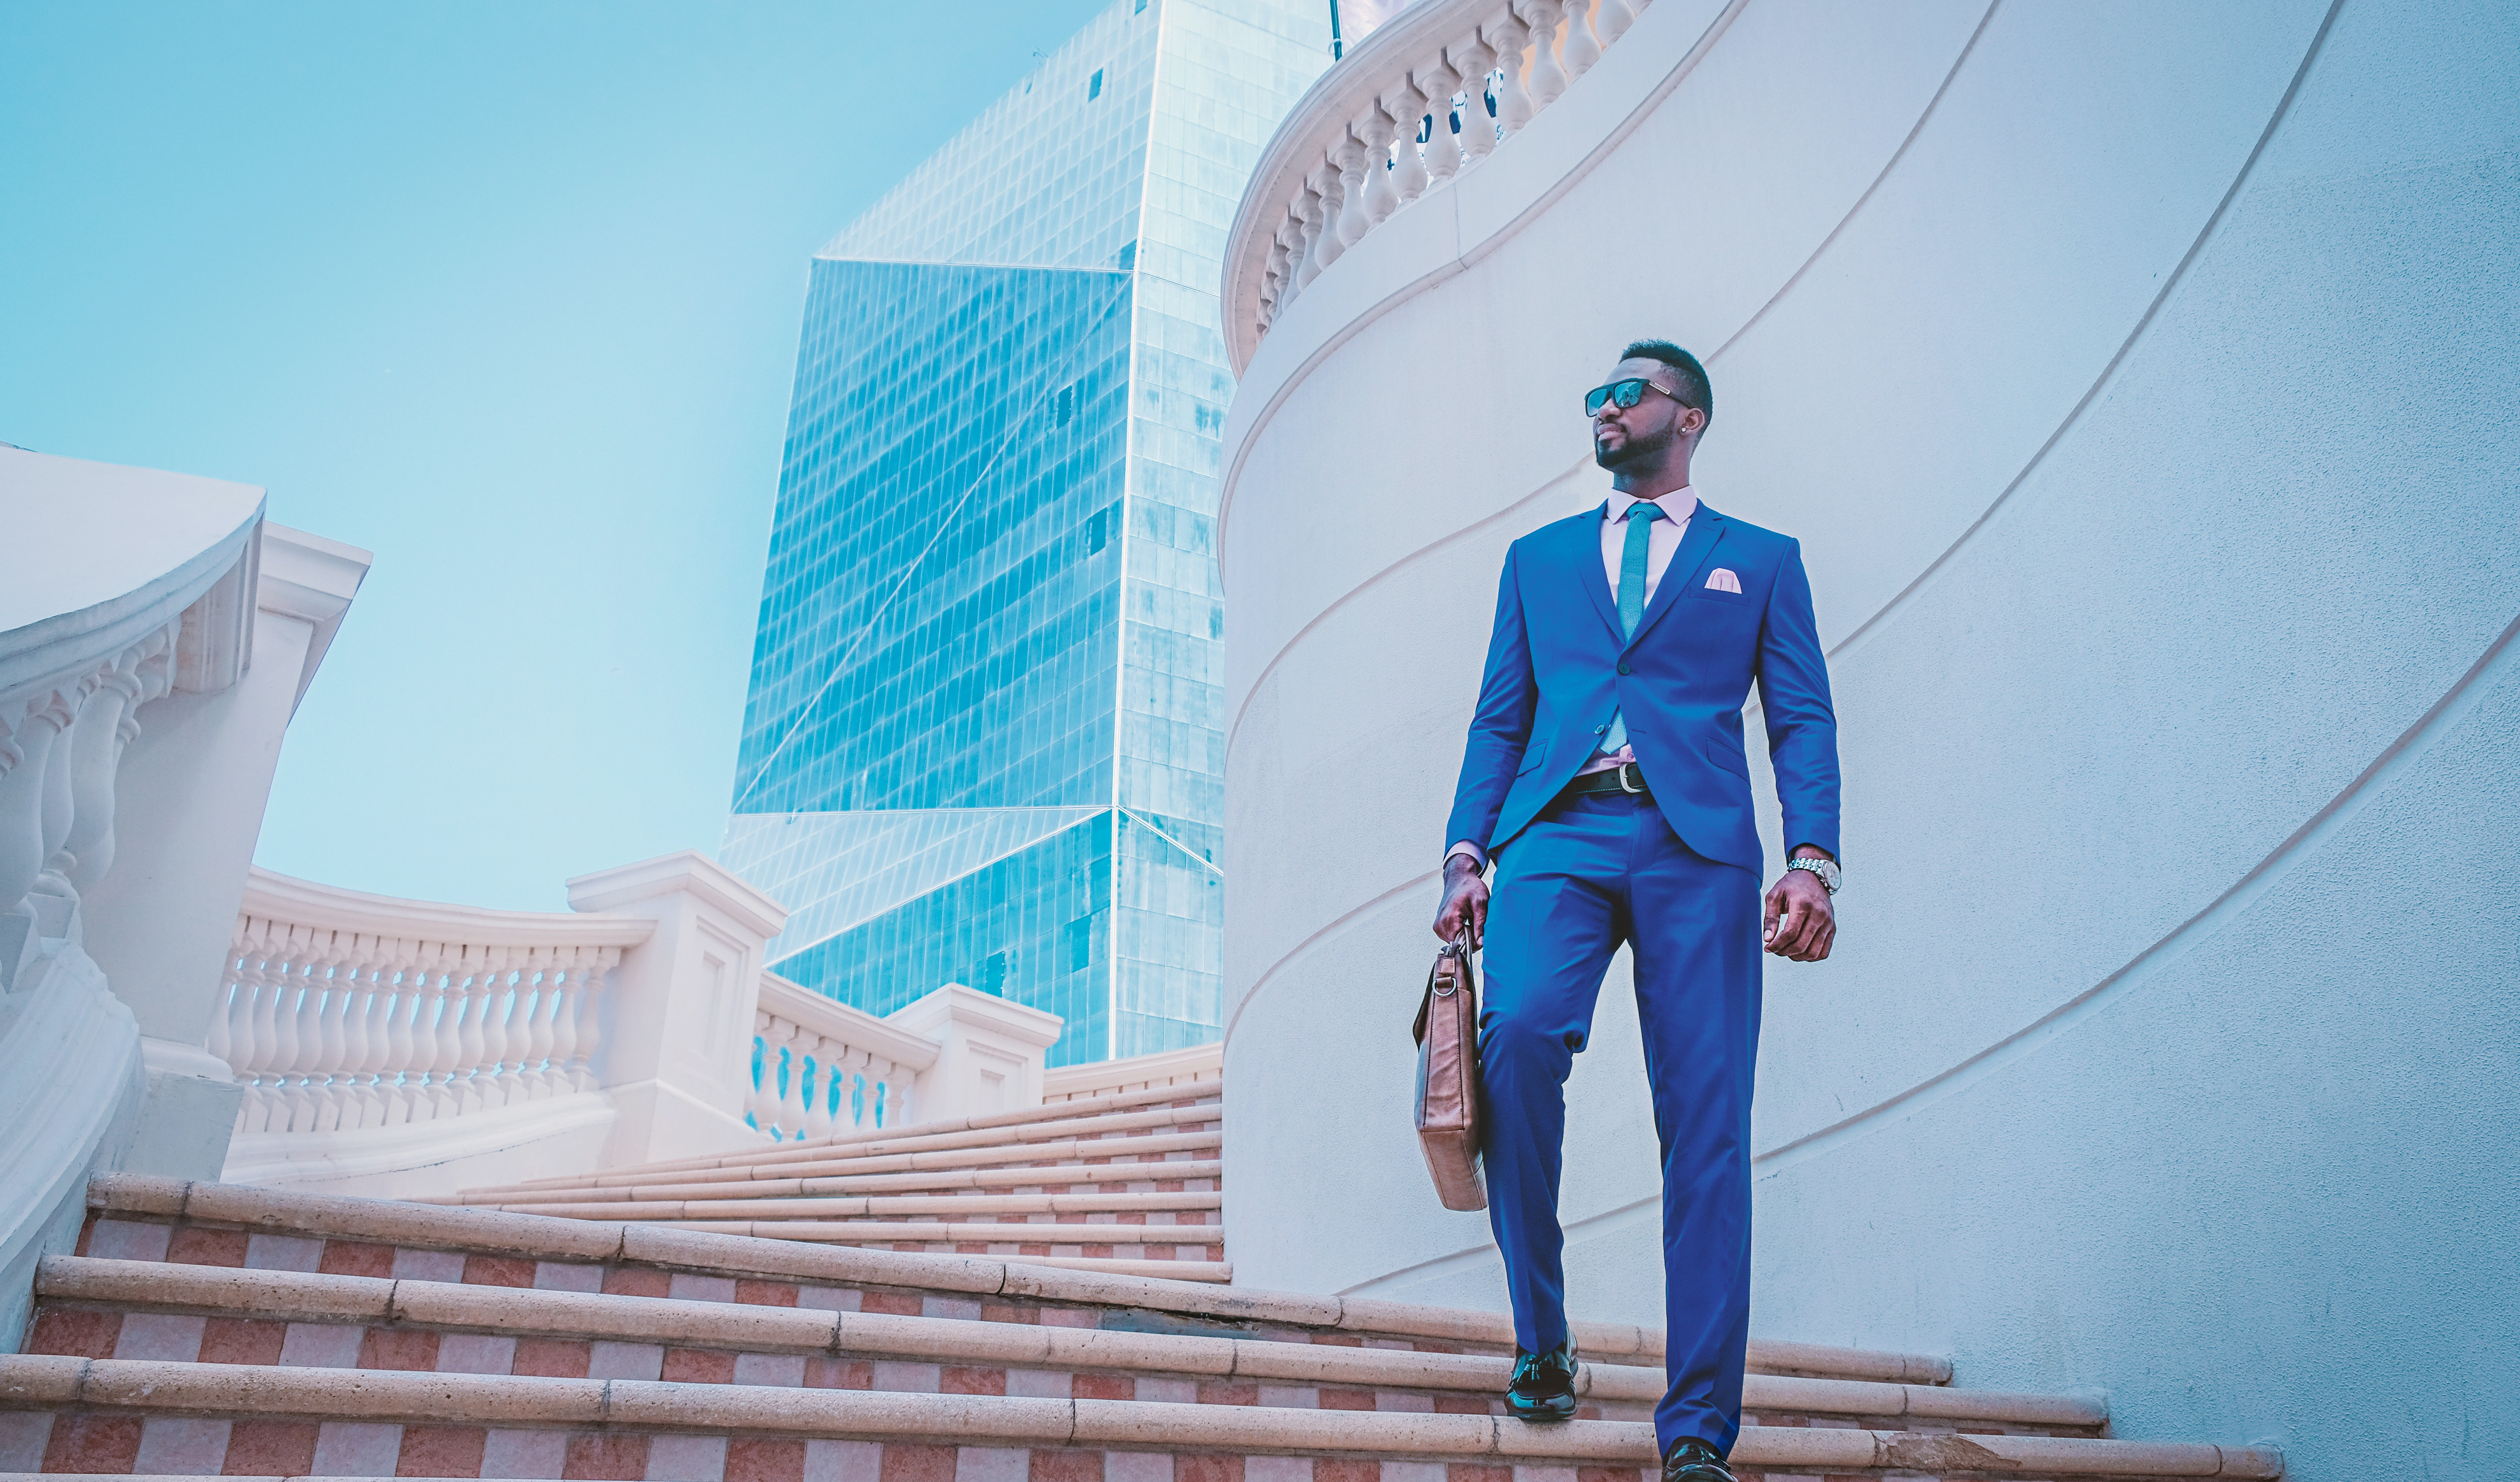 Man In Blue Suit and Briefcase Walking Down Stairs Gorilla Jobs Blog Tips To Building Strong Relationships with Recruiters